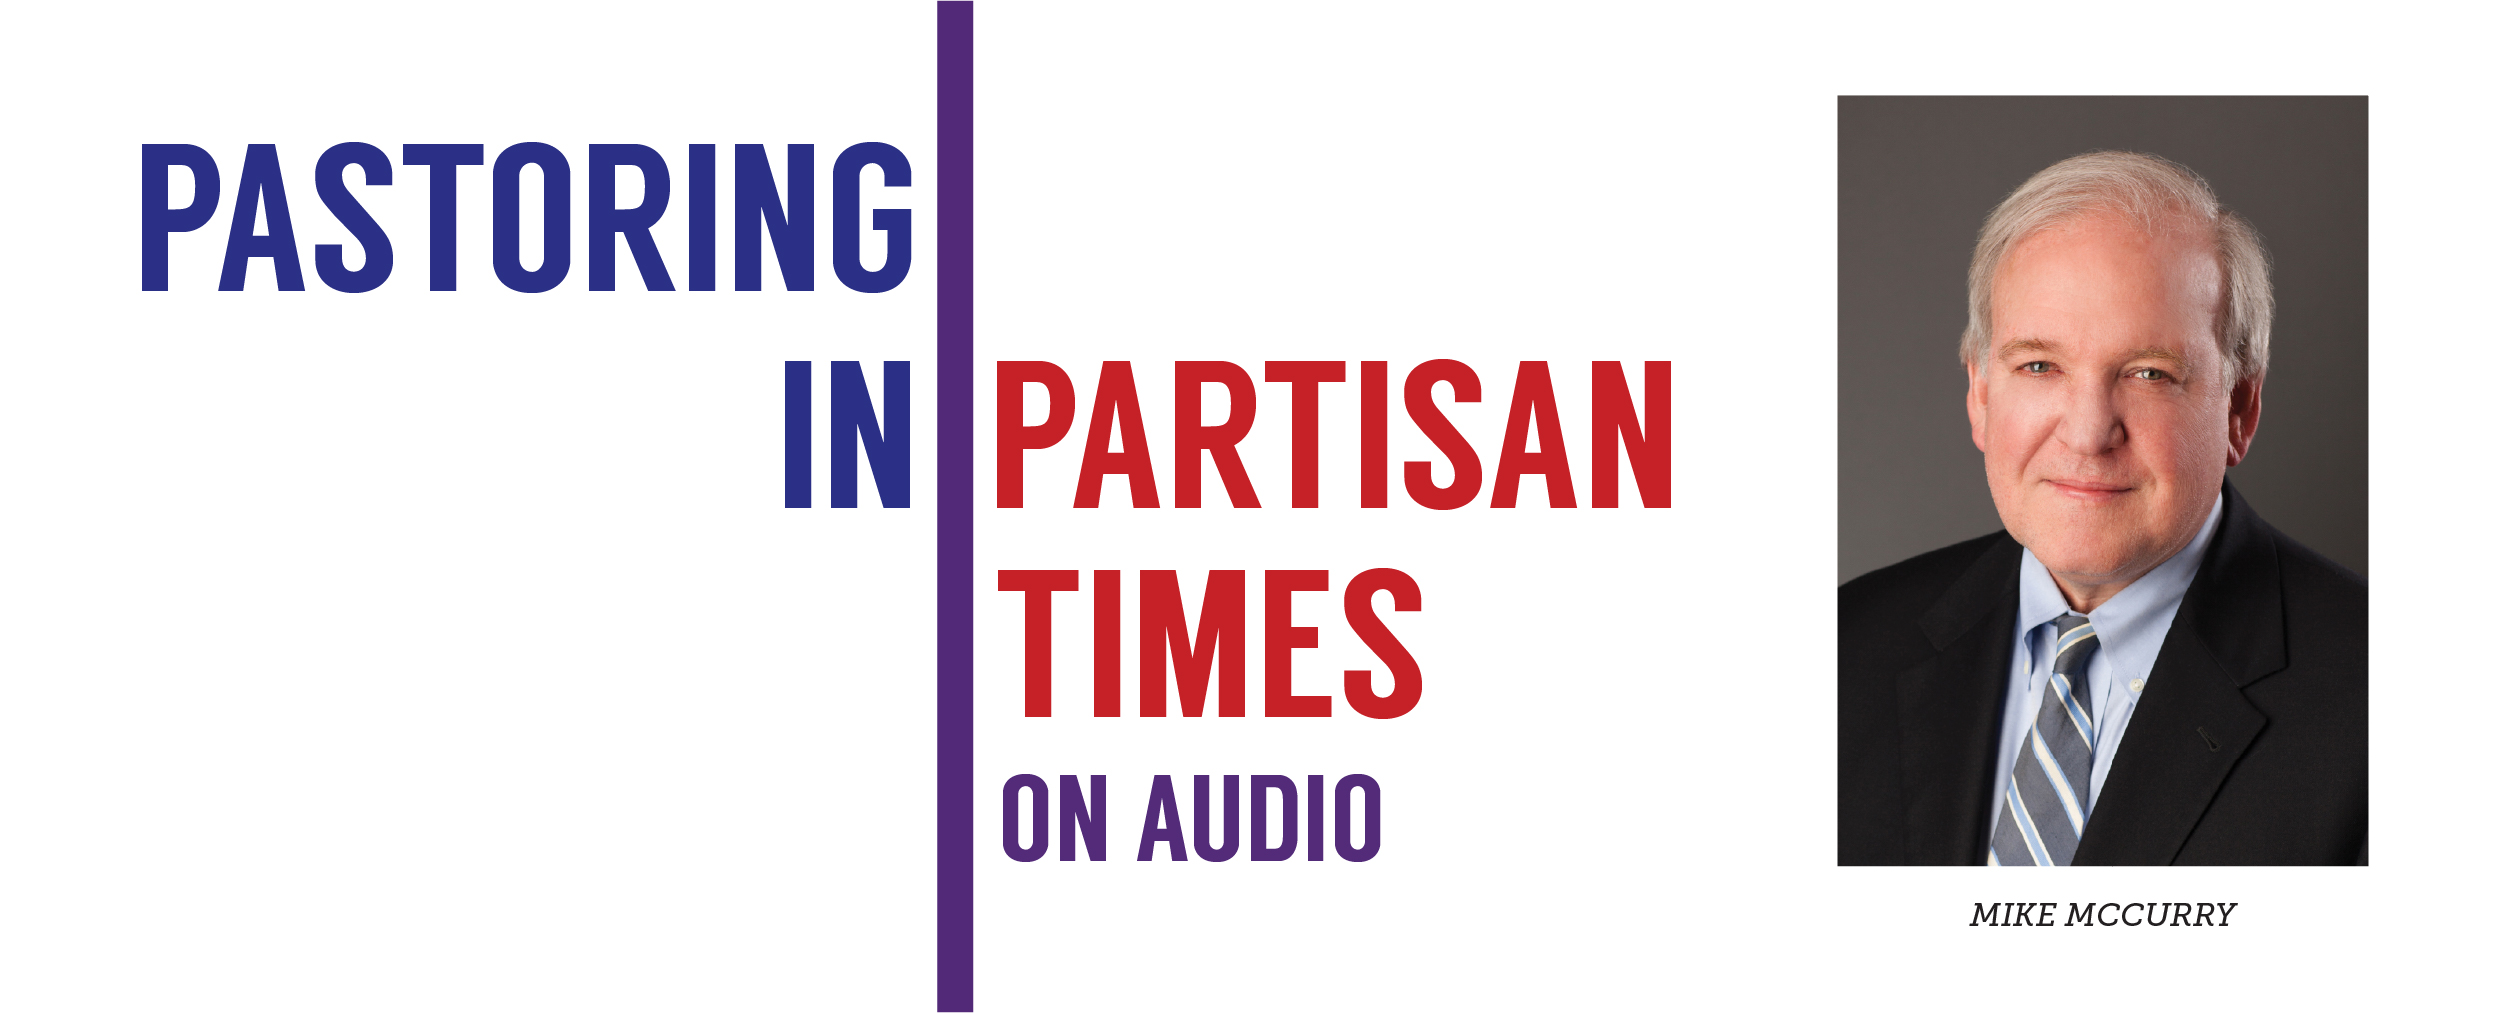 Pastoring in Partisan Times Podcast: Credible Communication with Mike McCurry